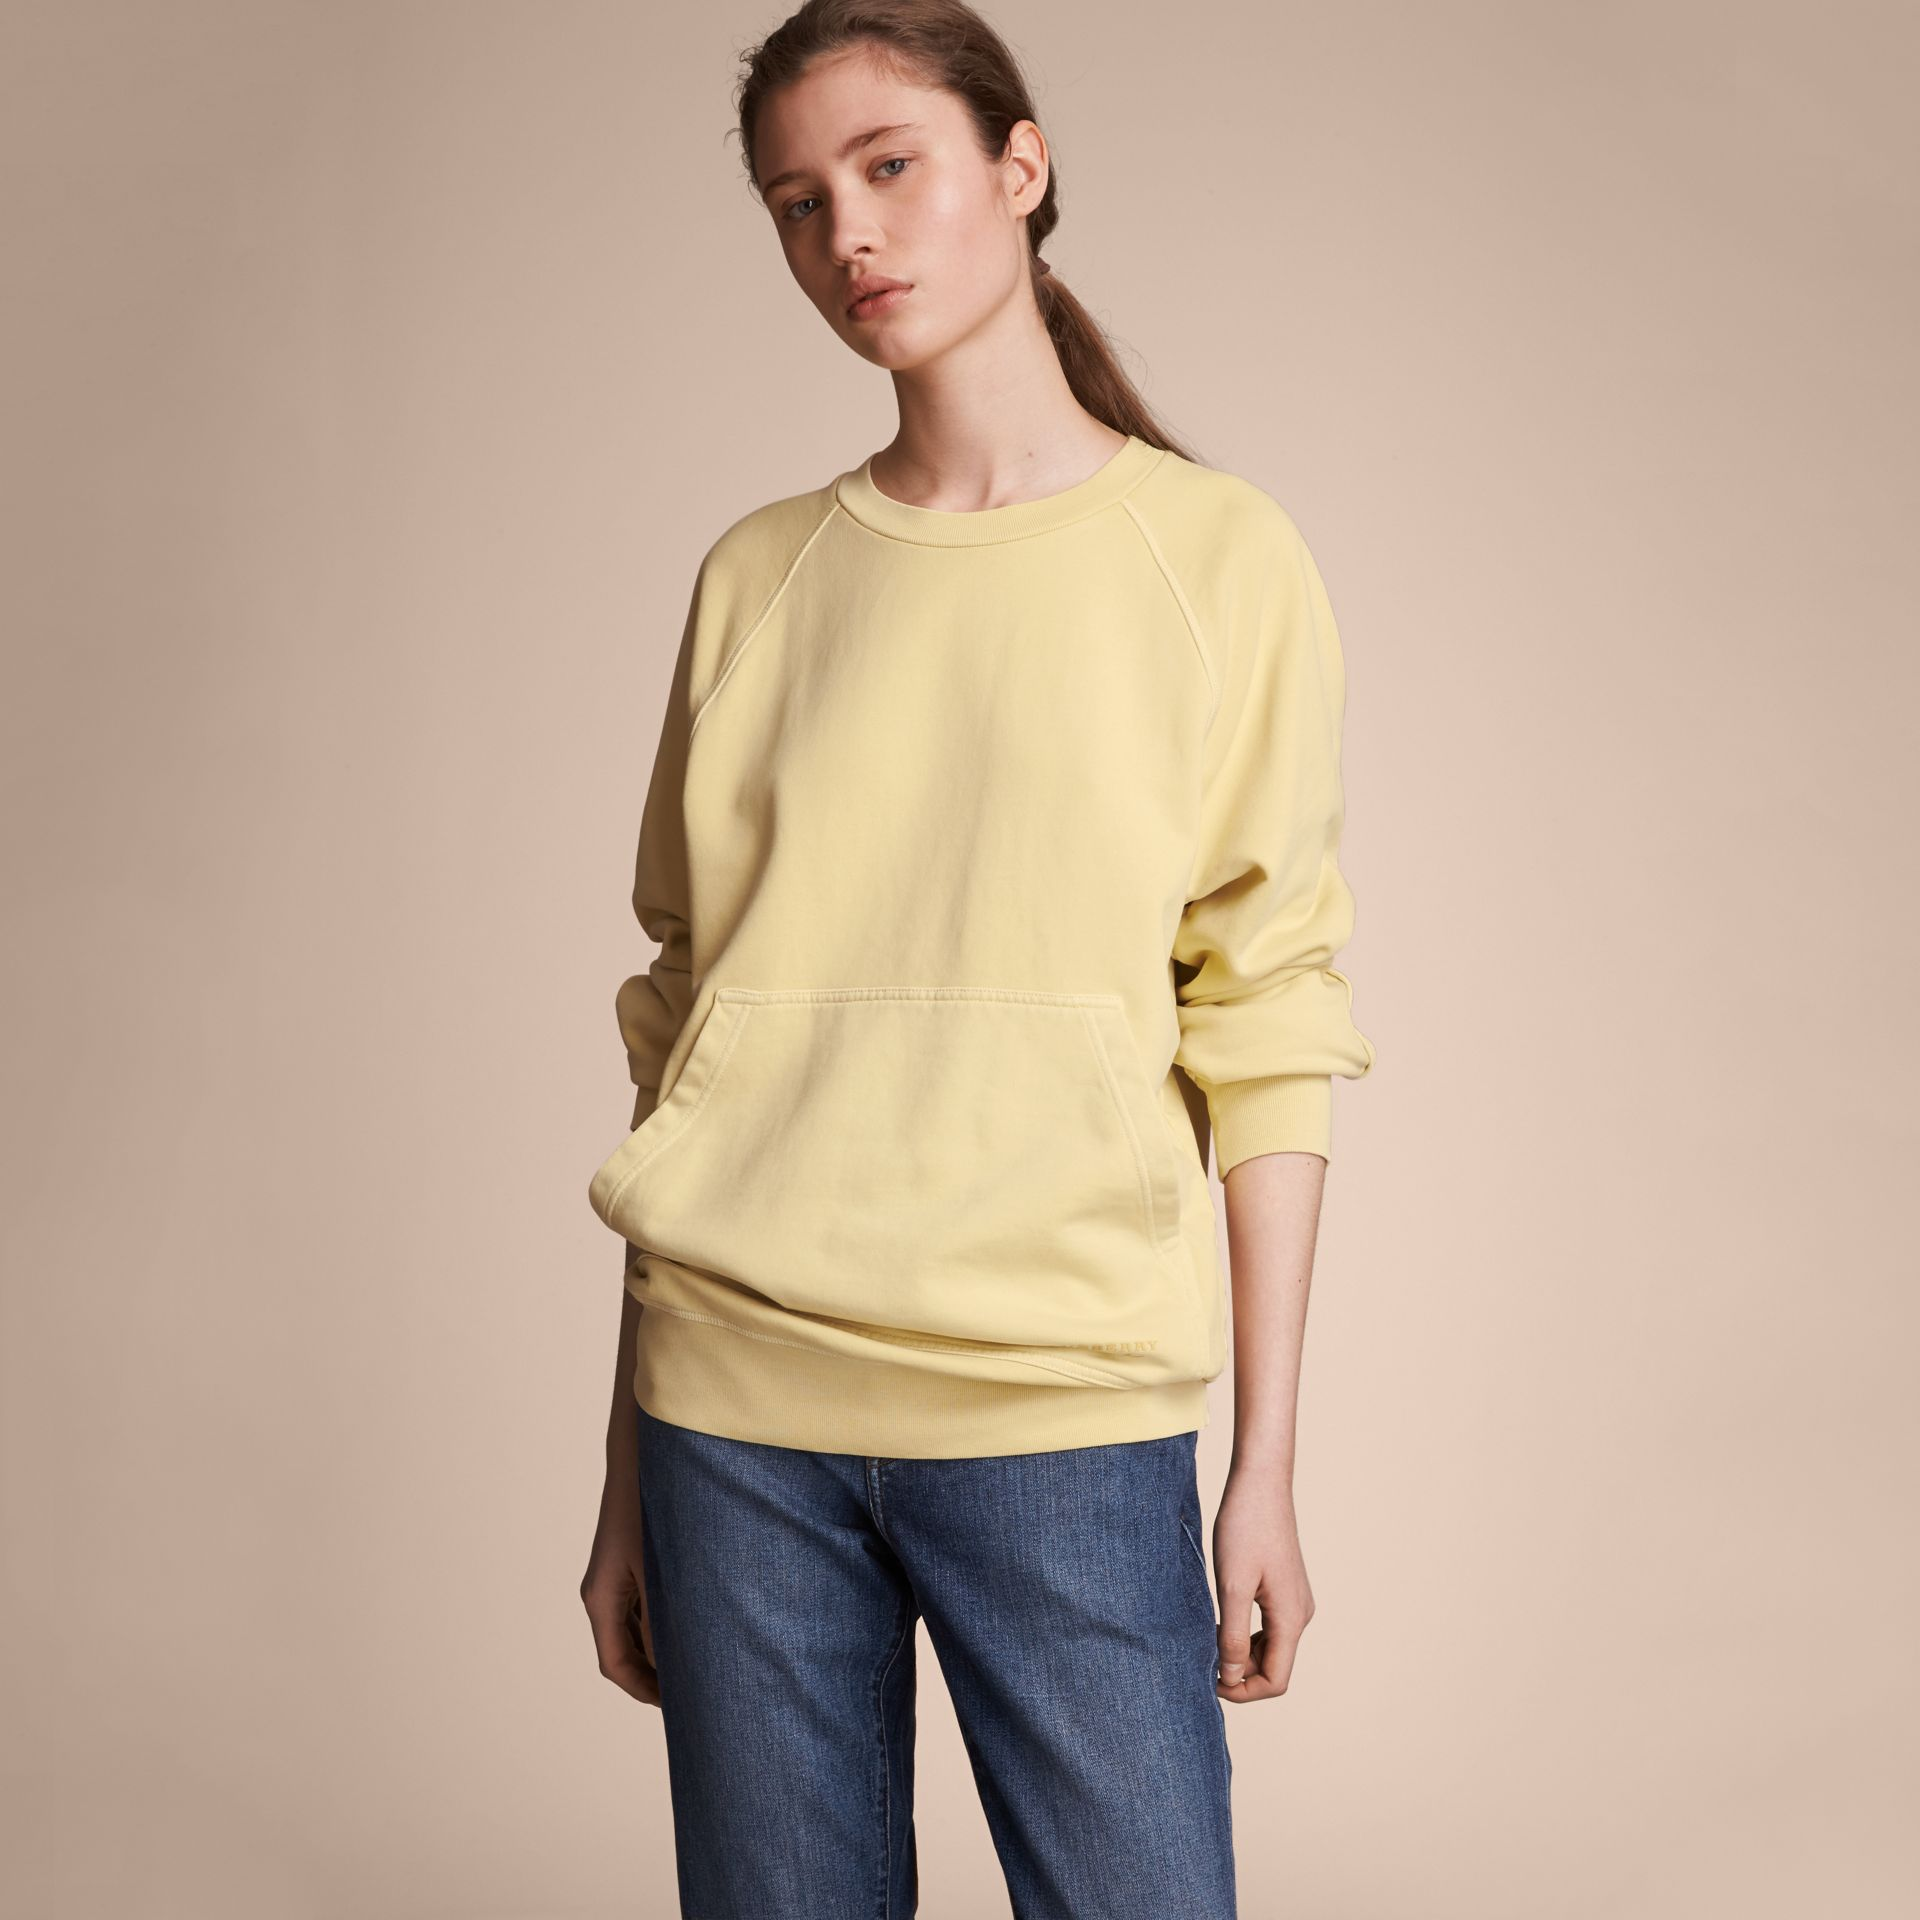 Unisex Pigment-dyed Cotton Oversize Sweatshirt in Pale Yellow - Women | Burberry - gallery image 7